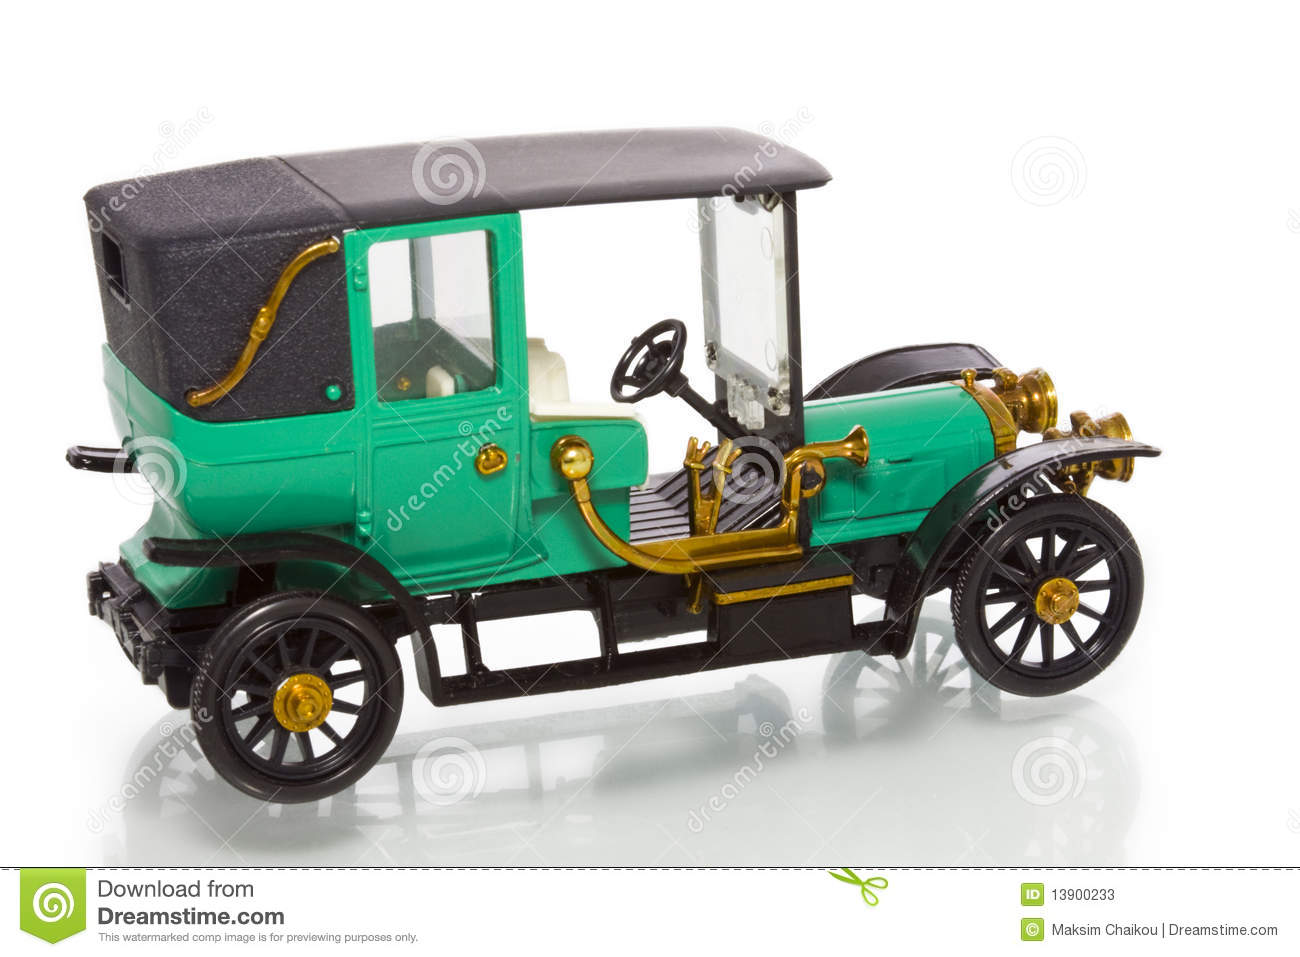 Toy Model Gallery : Toy model car stock photos image